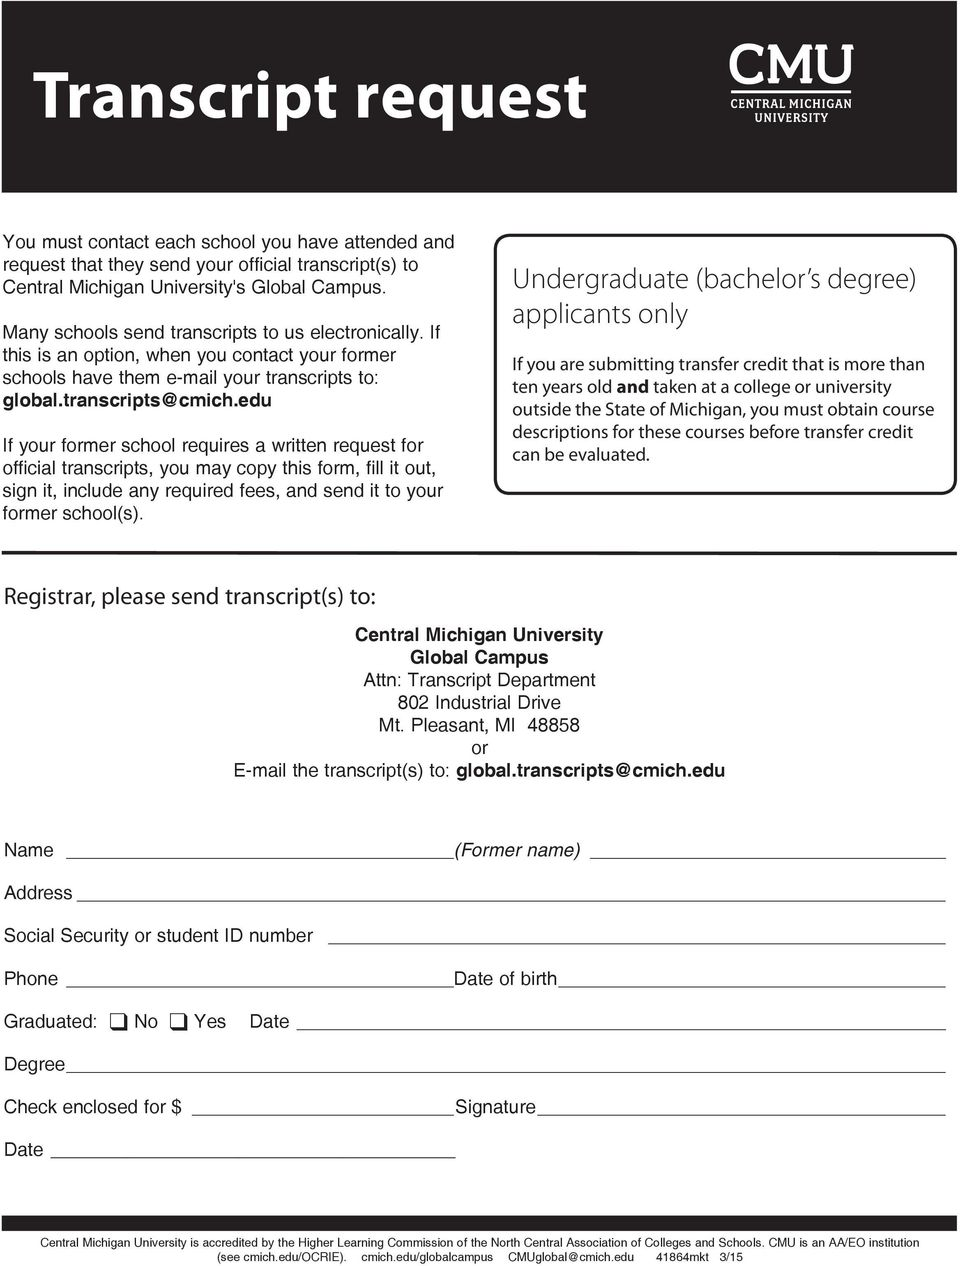 edu If your former school requires a written request for official transcripts, you may copy this form, fill it out, sign it, include any required fees, and send it to your former school(s).